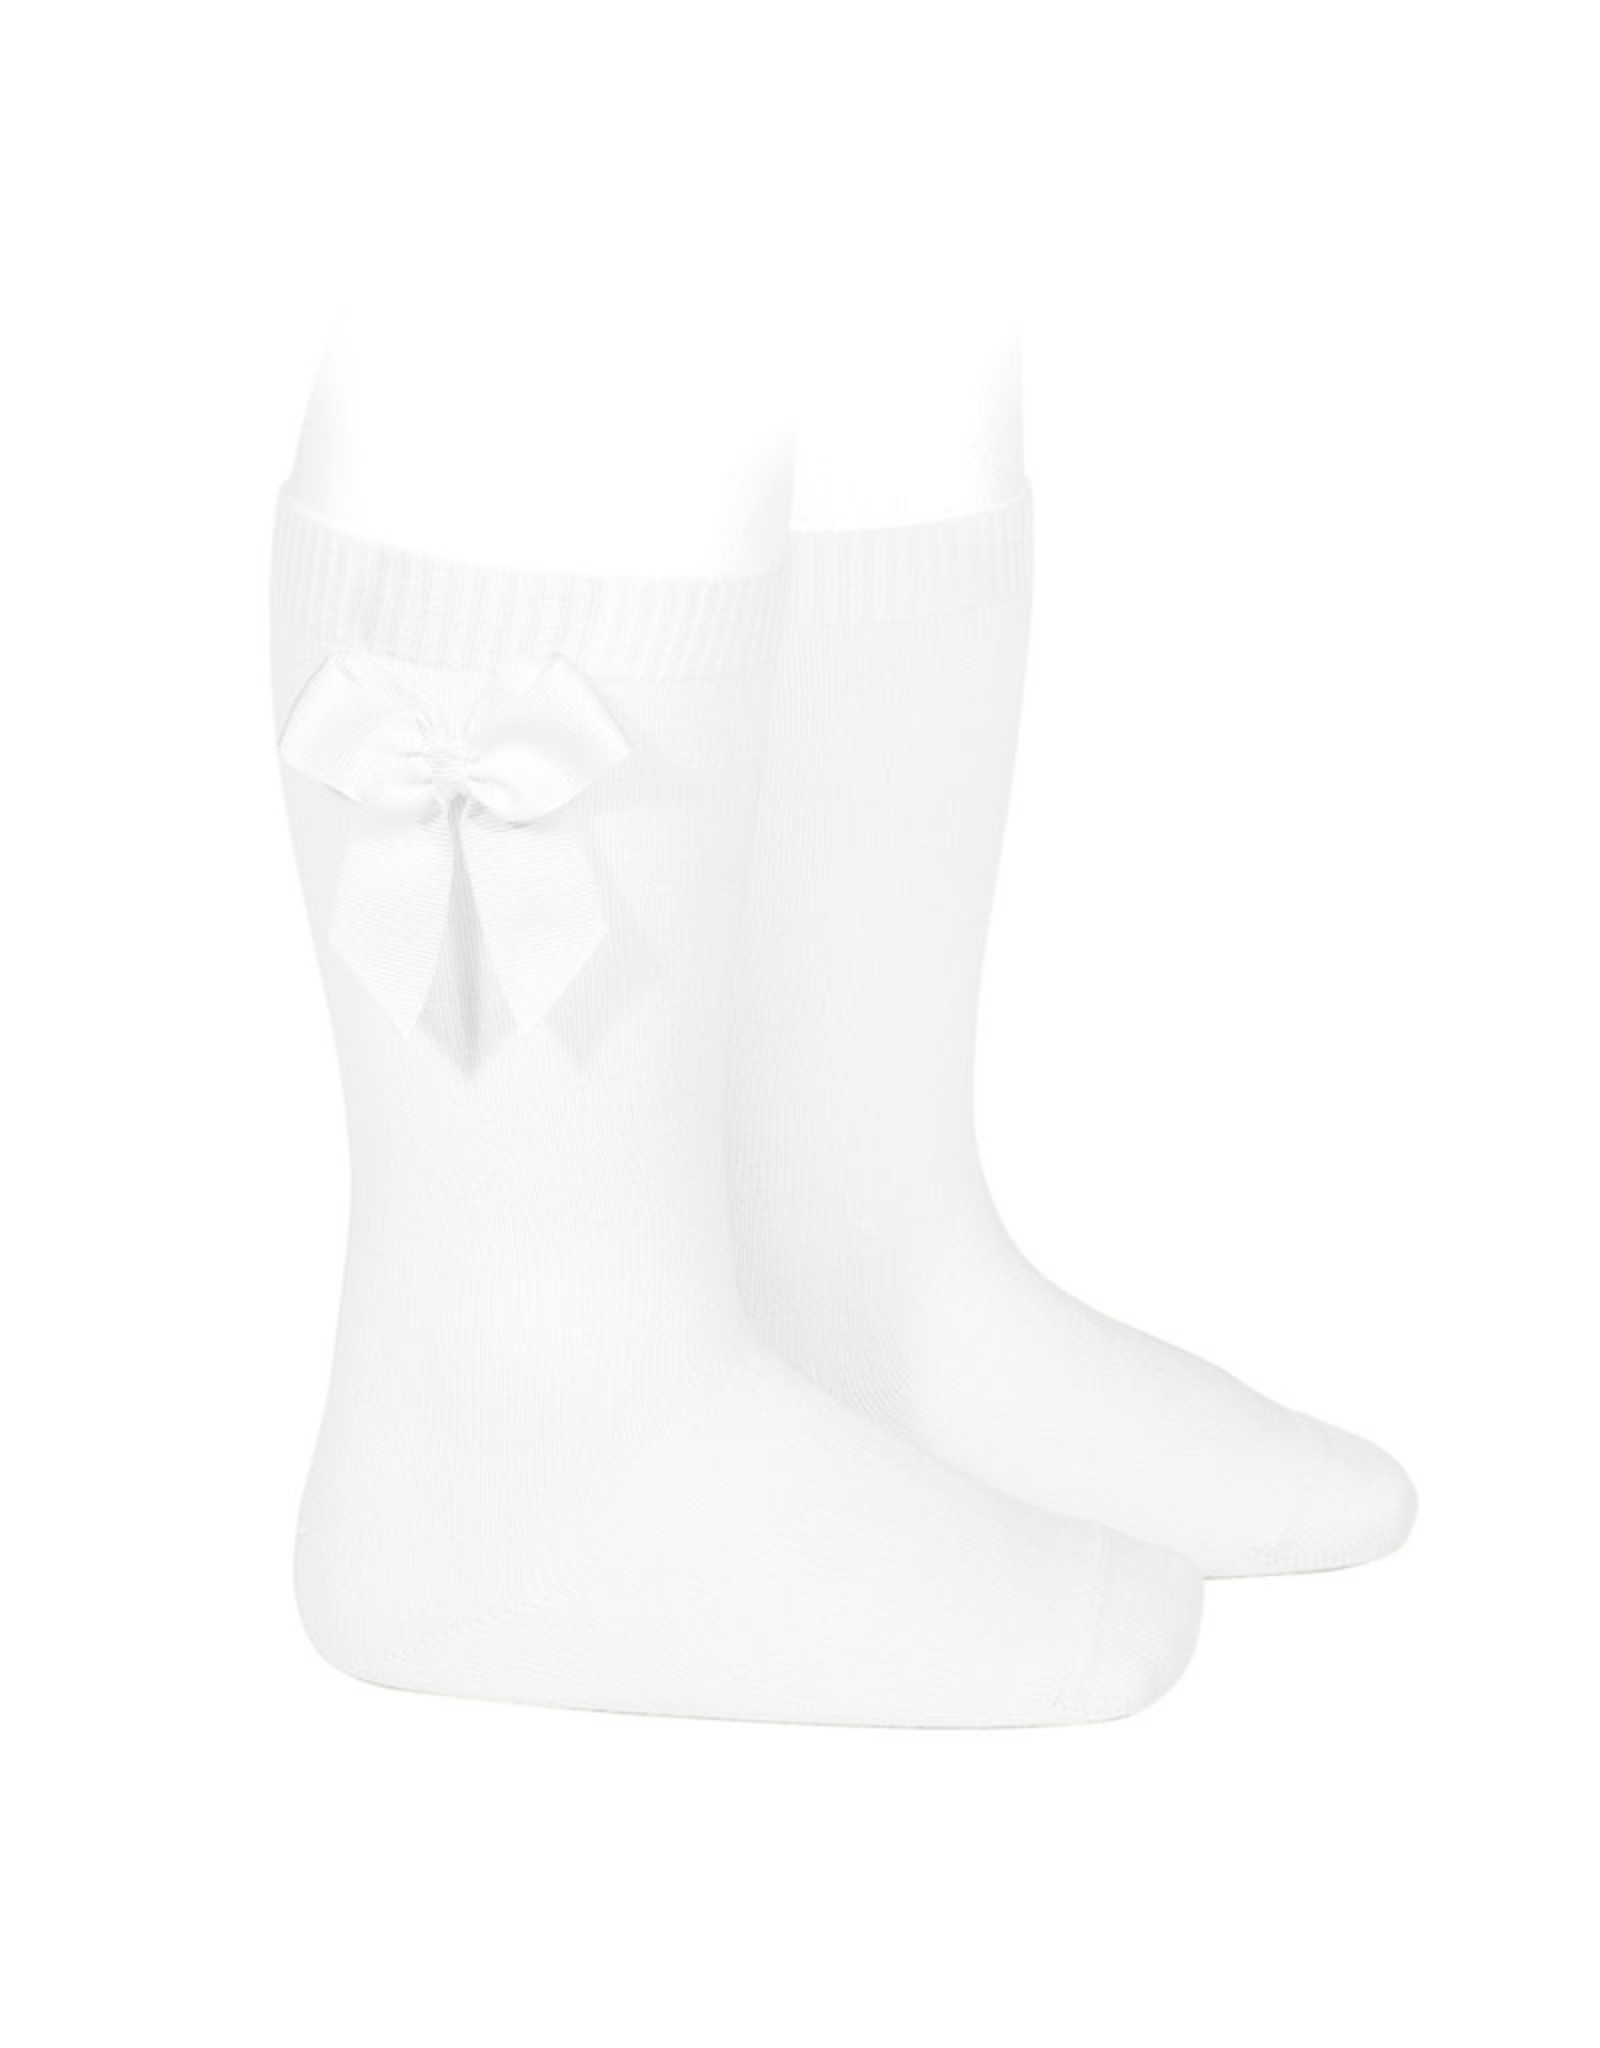 CONDOR White Knee Socks with Bow